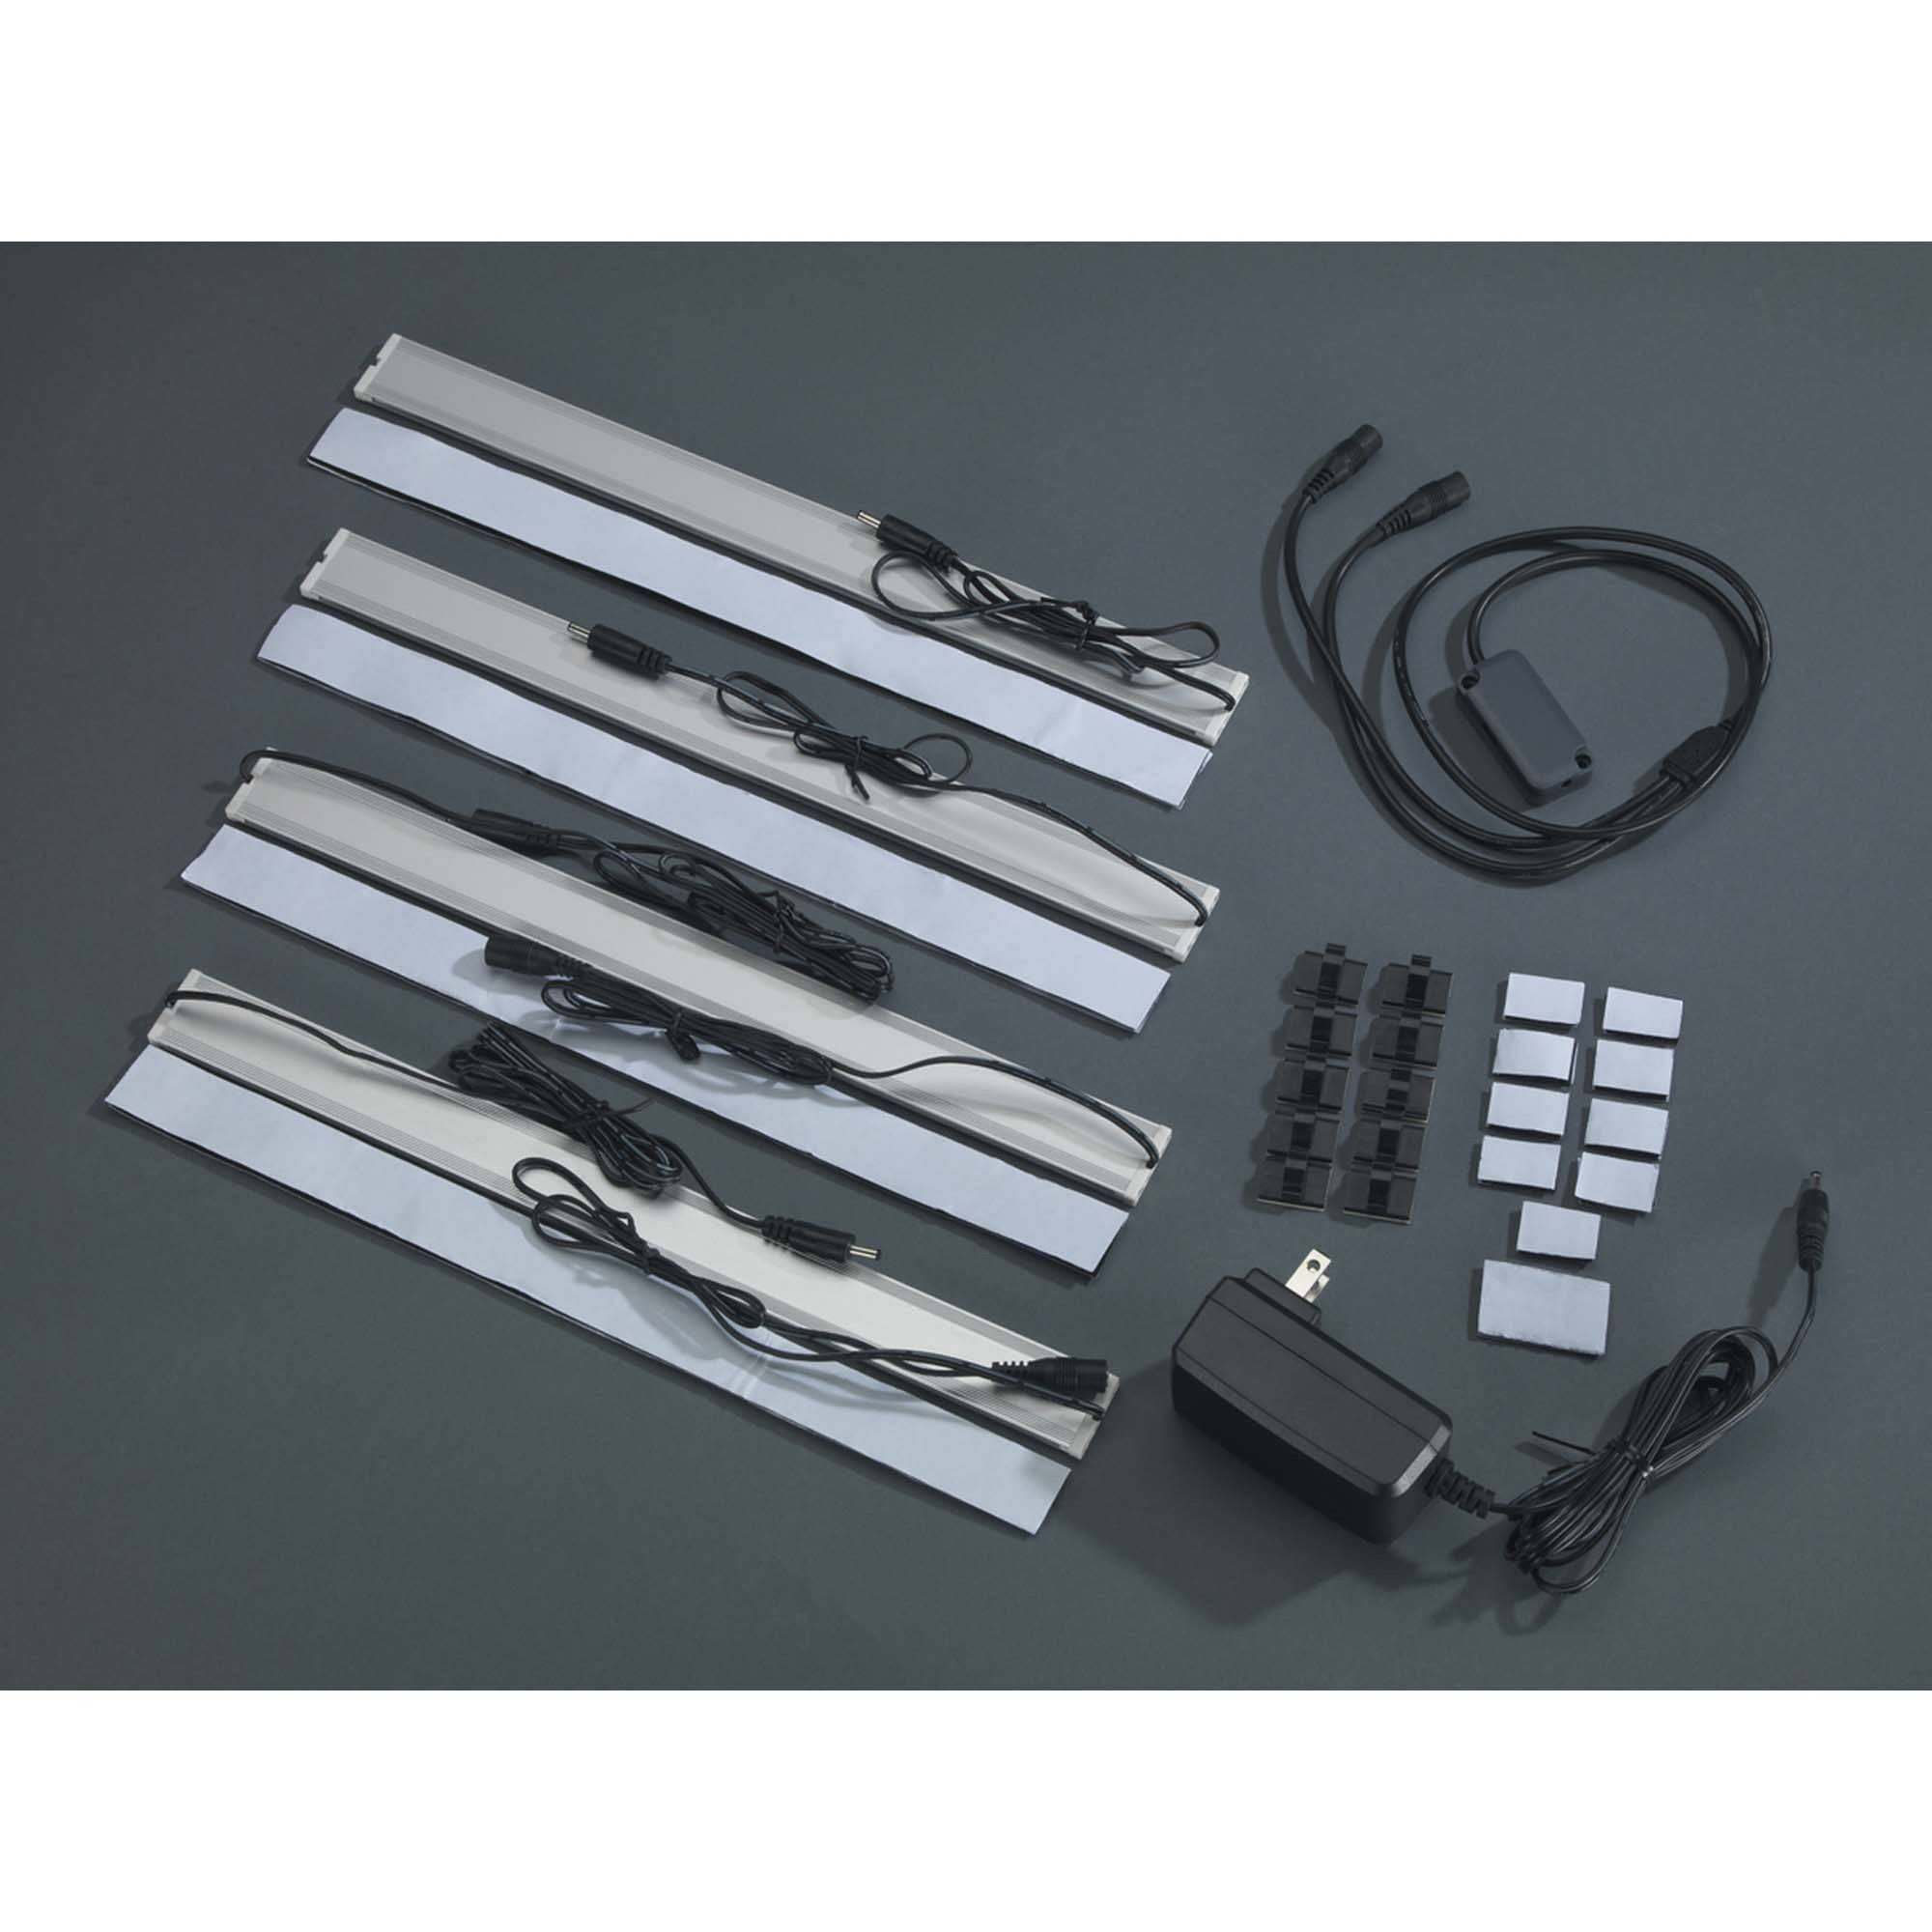 Deluxe Electric Light Kit with 4 Light Bars